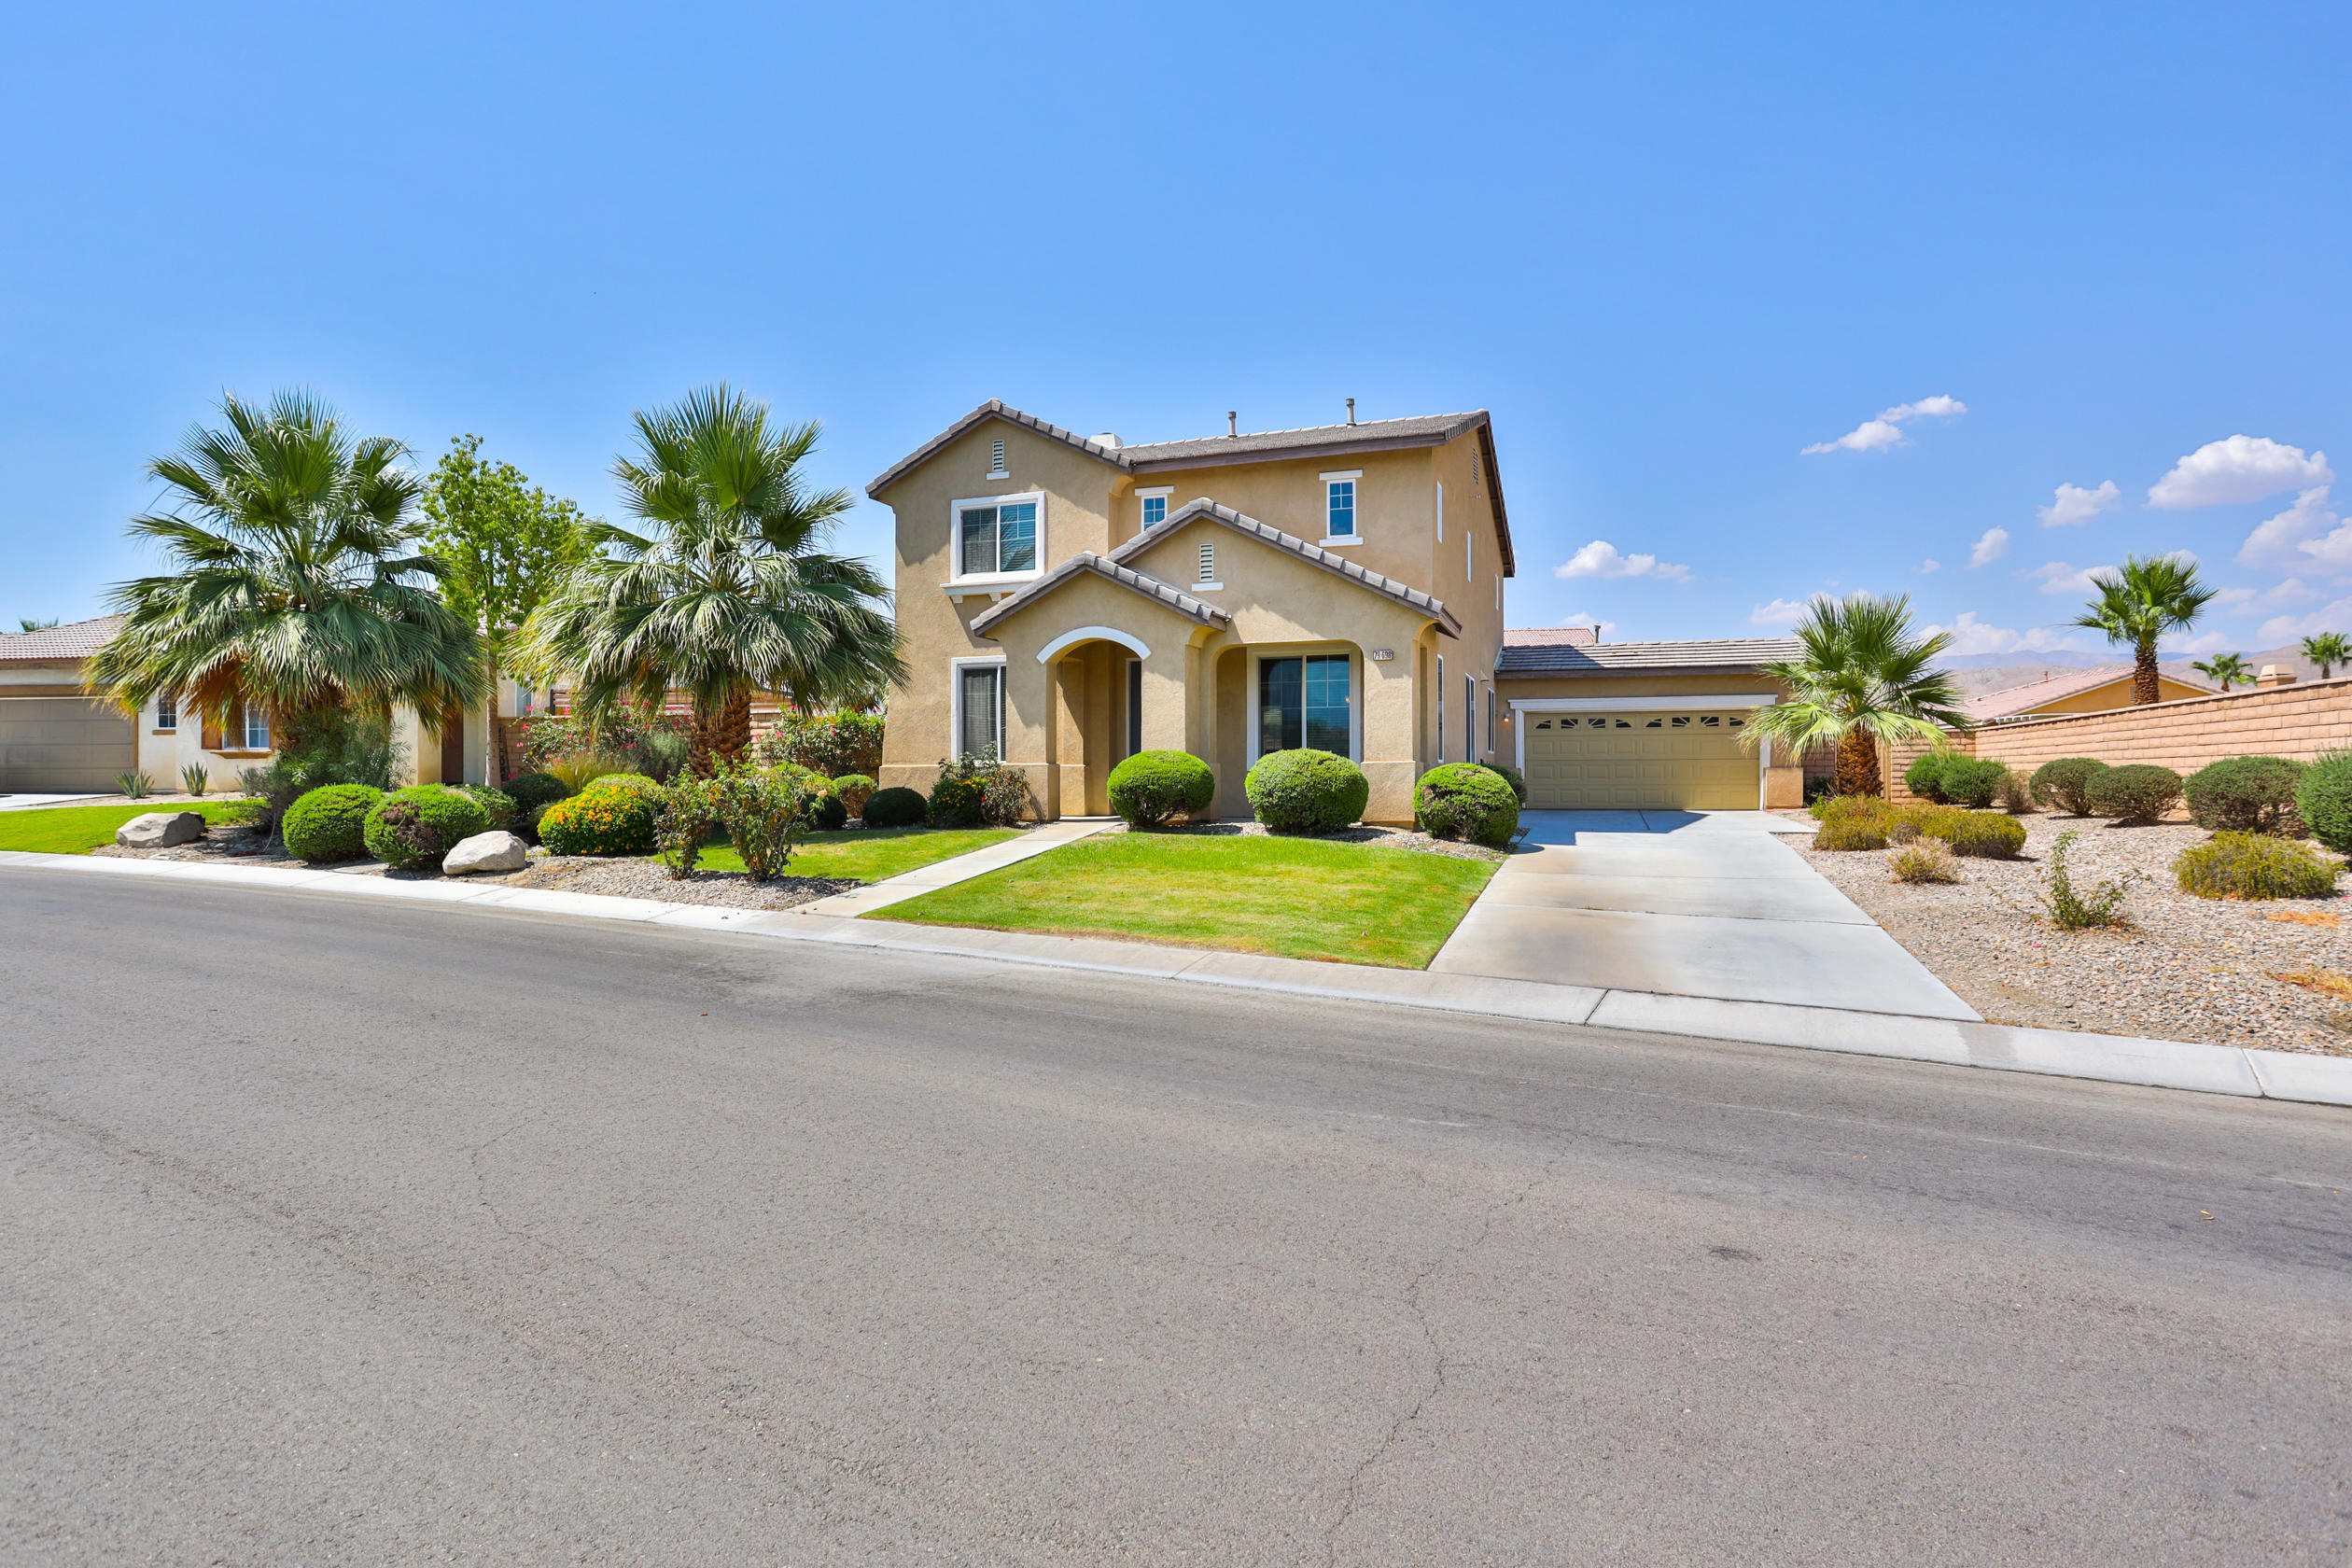 Photo of 79698 Brent Dr, Indio, CA 92203